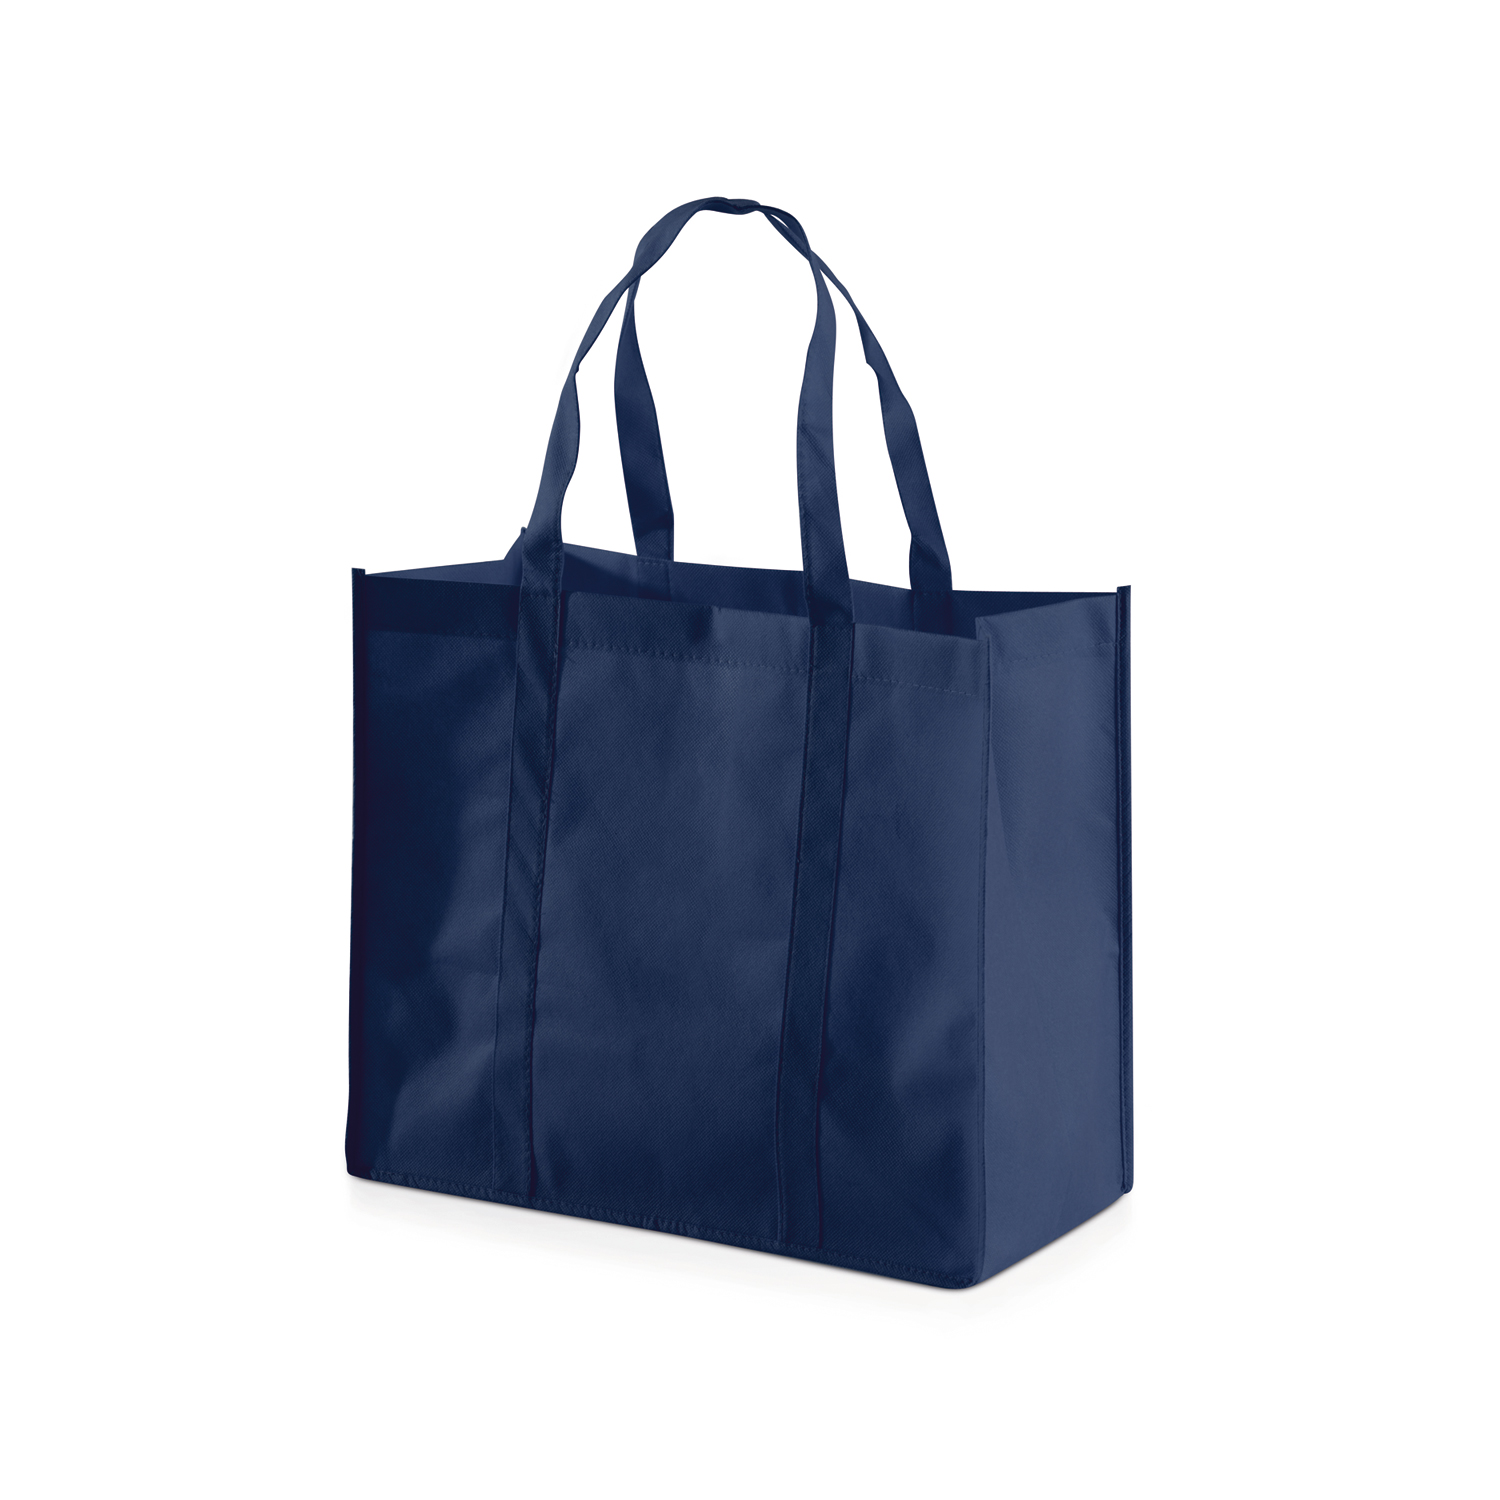 Shopping Bag 013 (Non-woven Shopping bag) - hmi17013-08 (Dark Blue)